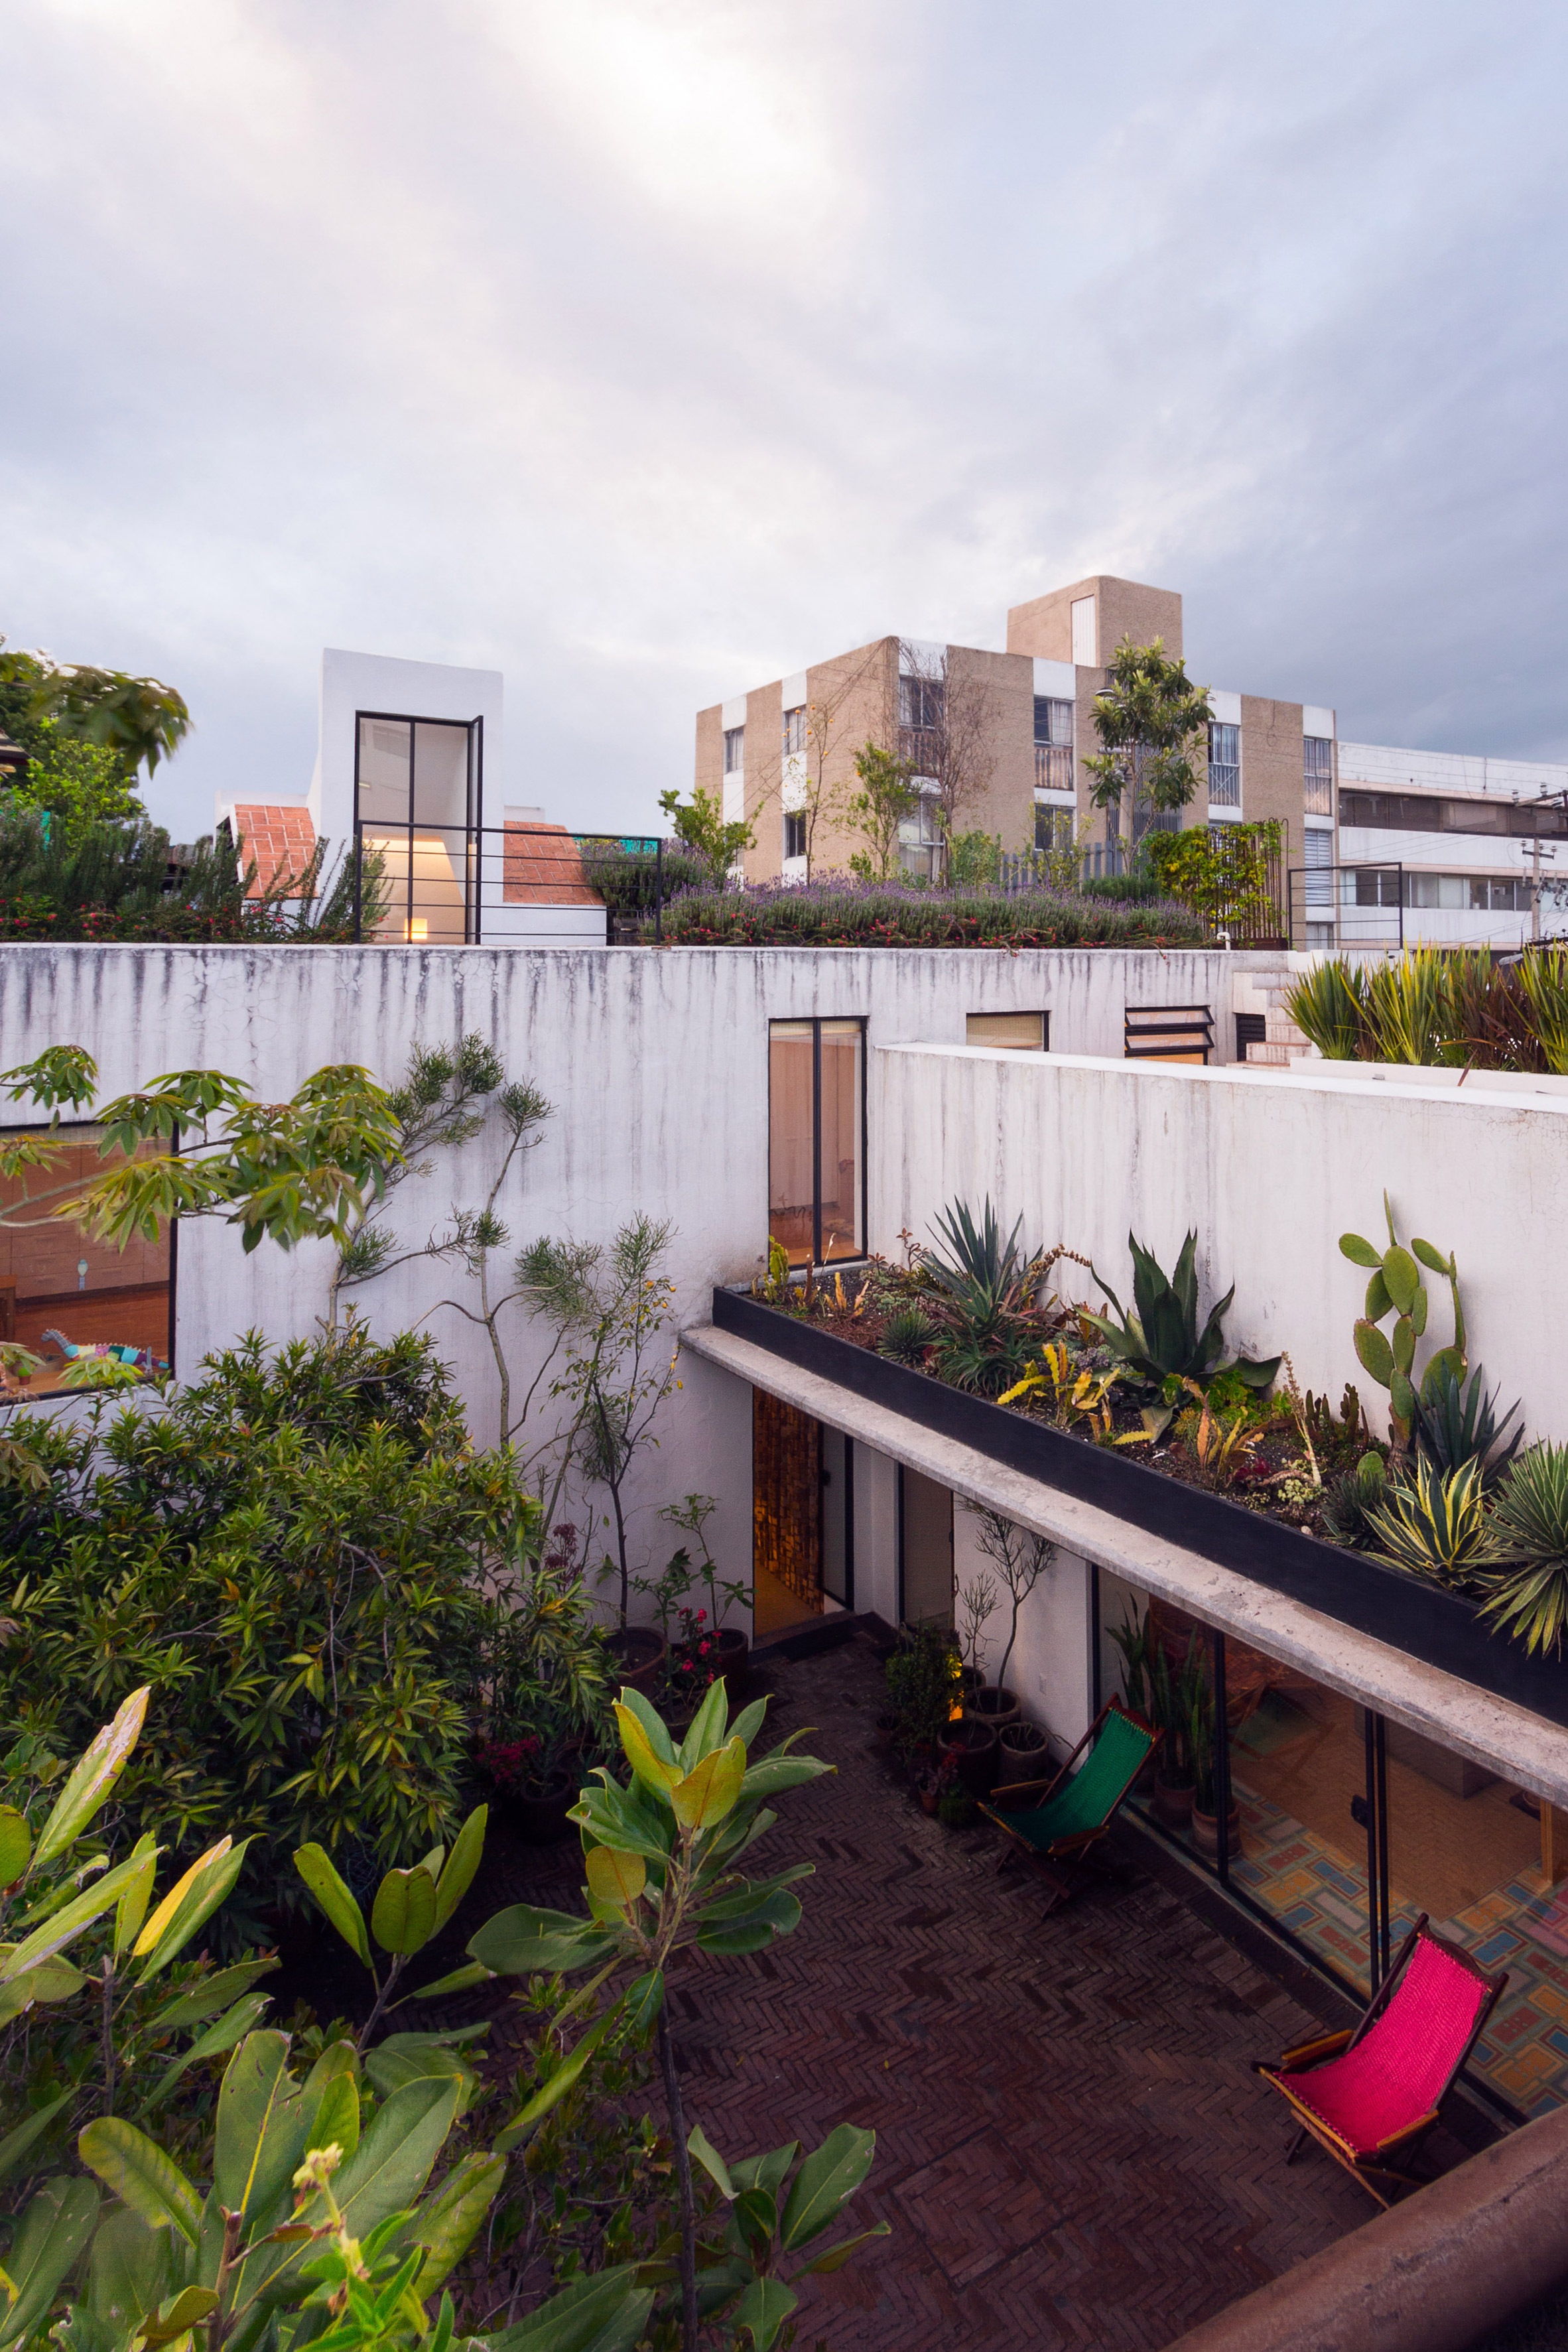 Andres Stebelski opens up artist's Mexico City house to its courtyard during renovation